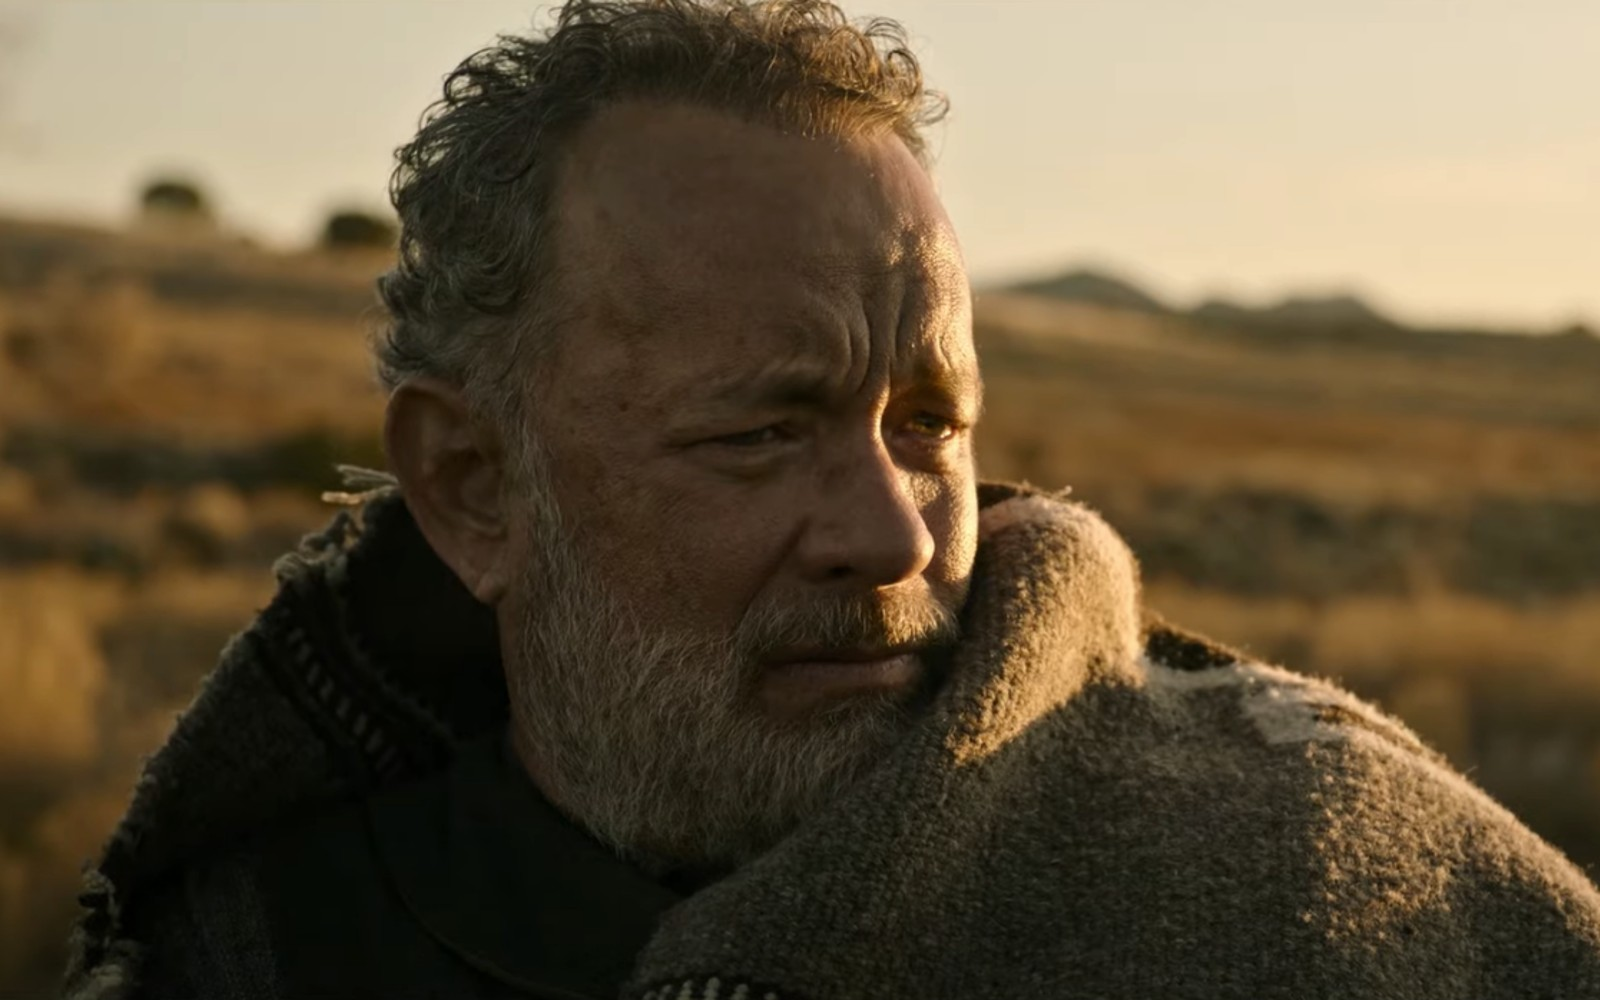 'Finch' trailer sees man, machine and dog try to flee climate change